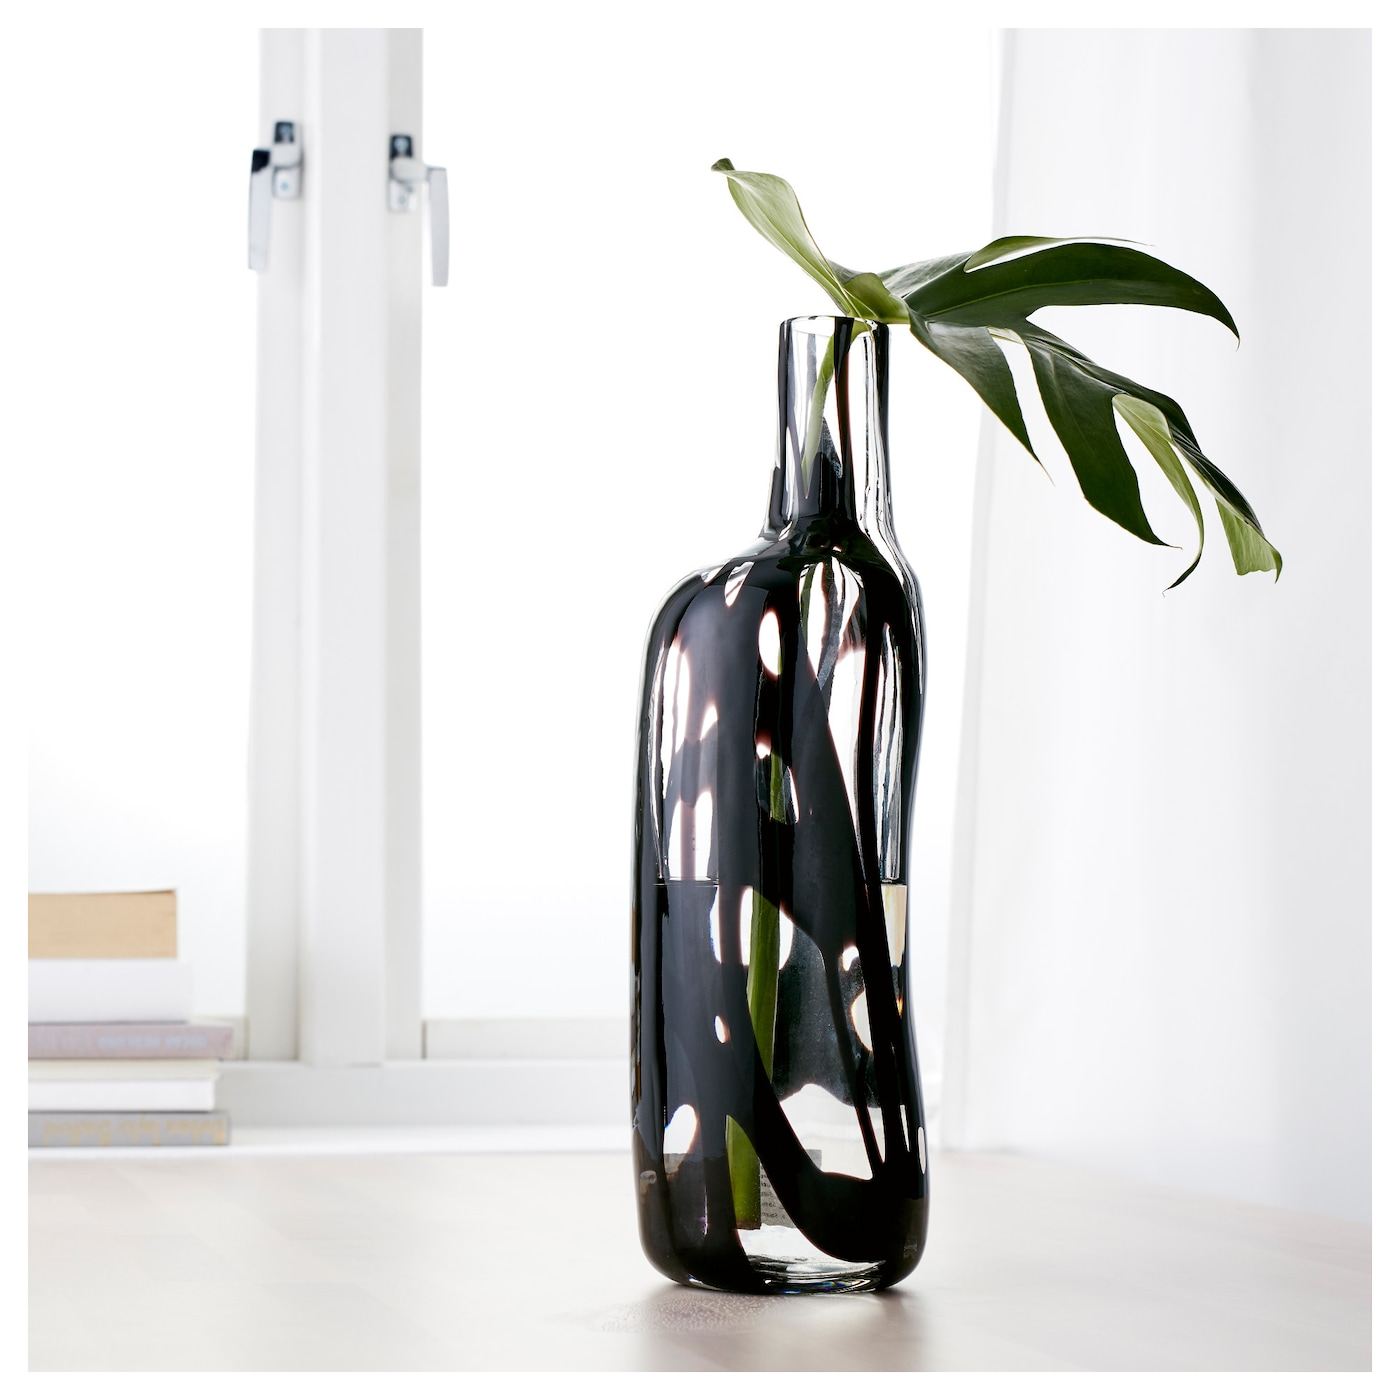 IKEA FIRANDE vase Use the vase with flowers or alone, as a beautiful object in its own right.